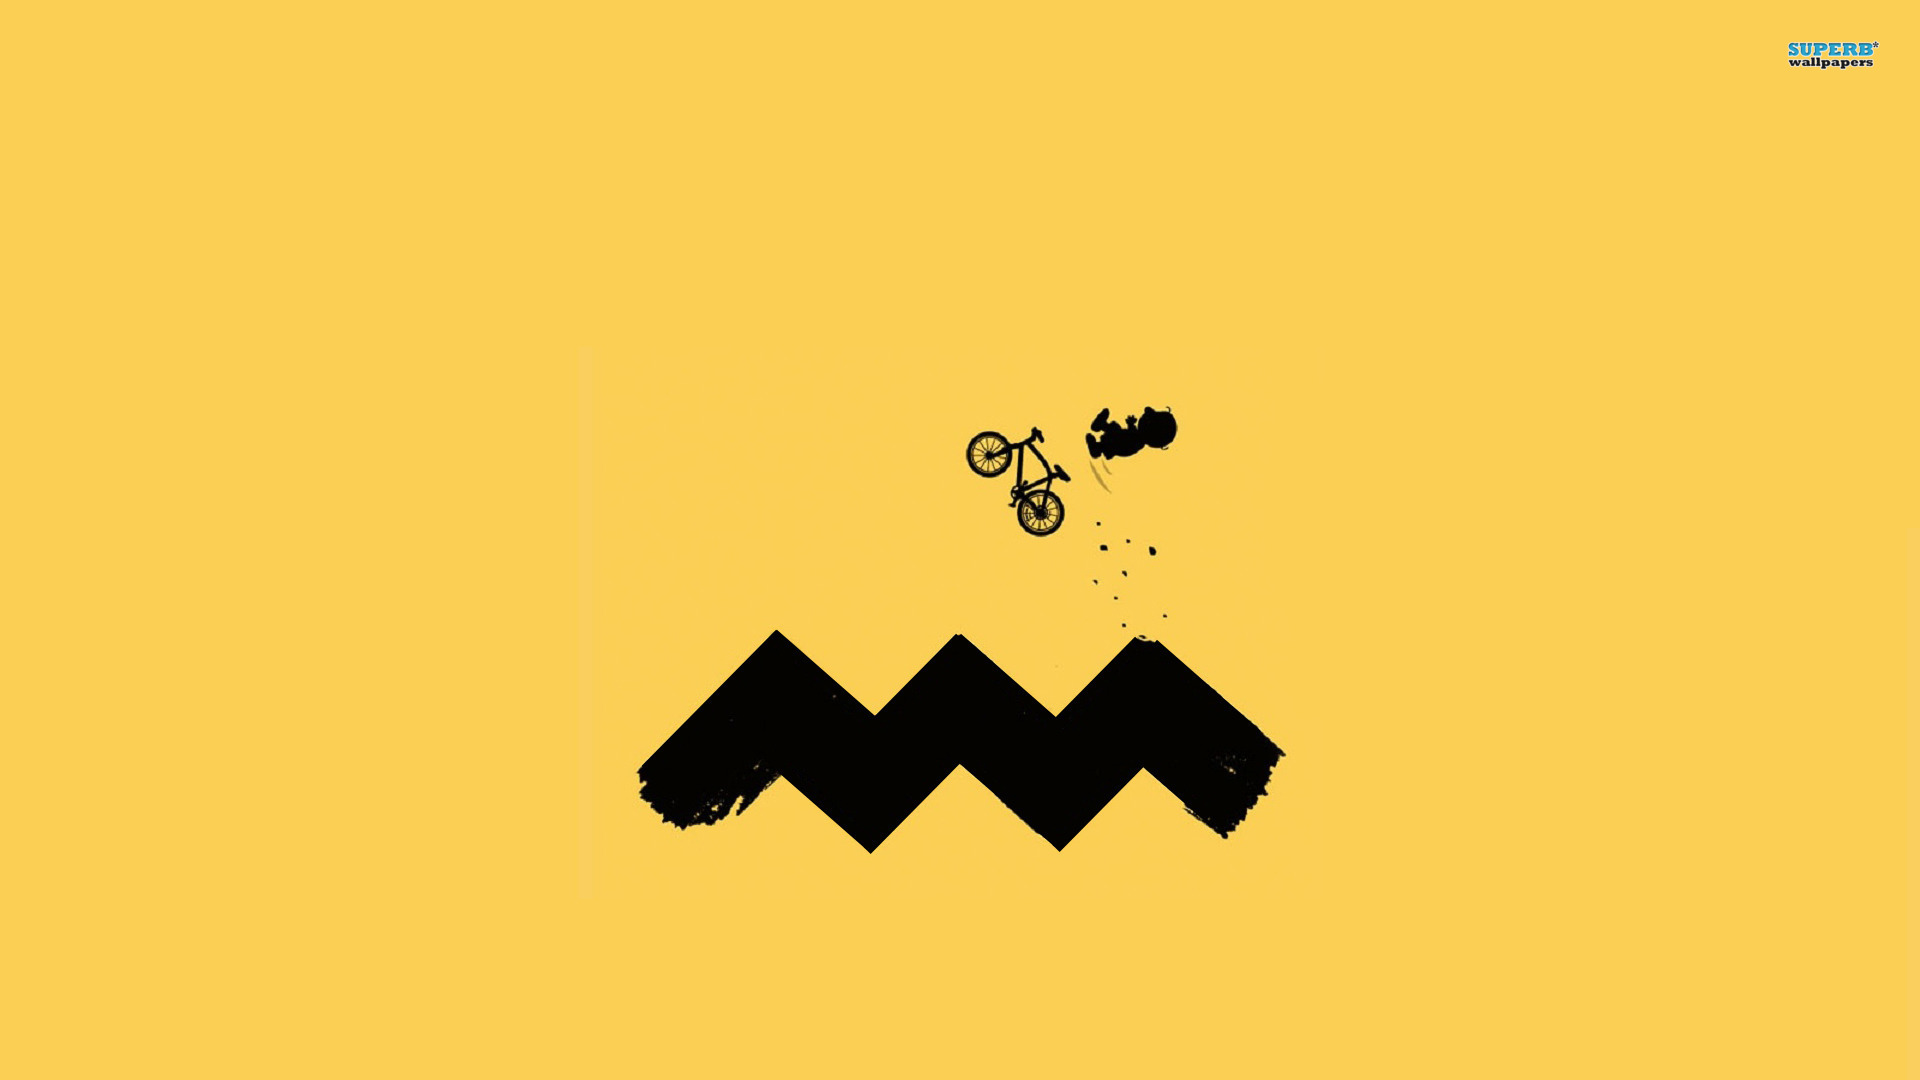 Collection of Charlie Brown Wallpapers on HDWallpapers